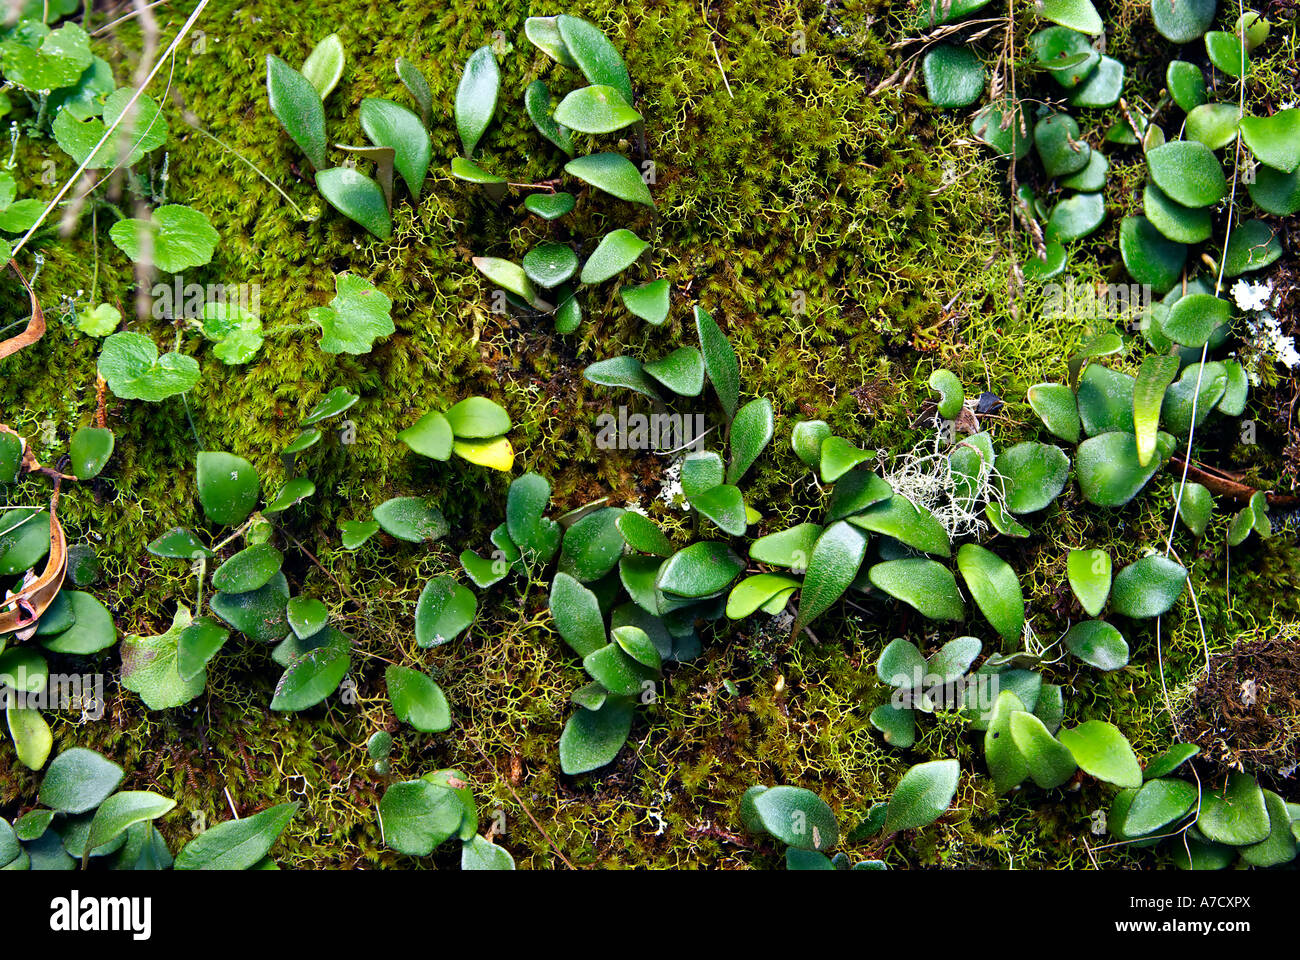 moss and creeper all over a rock in the oxley world heritage rainforest to be nice nature background - Stock Image